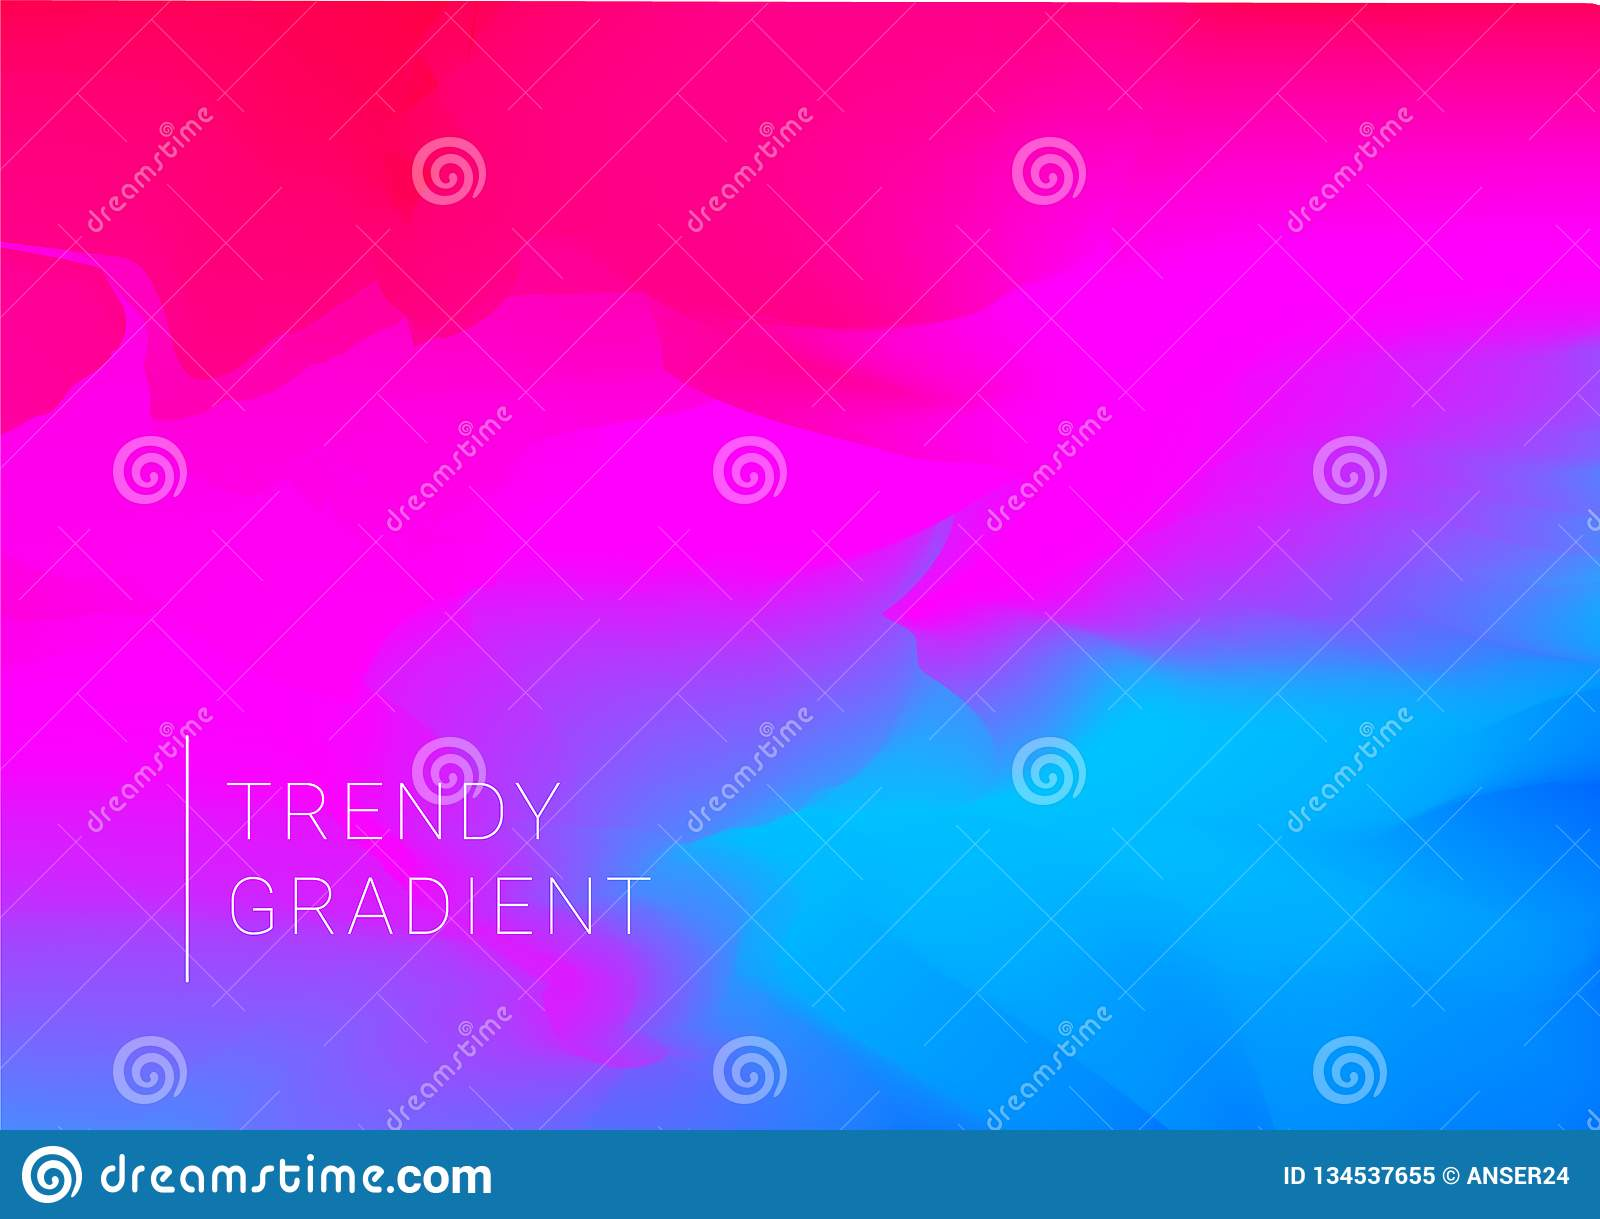 Vector design template in trendy vibrant gradient colors with abstract shapes